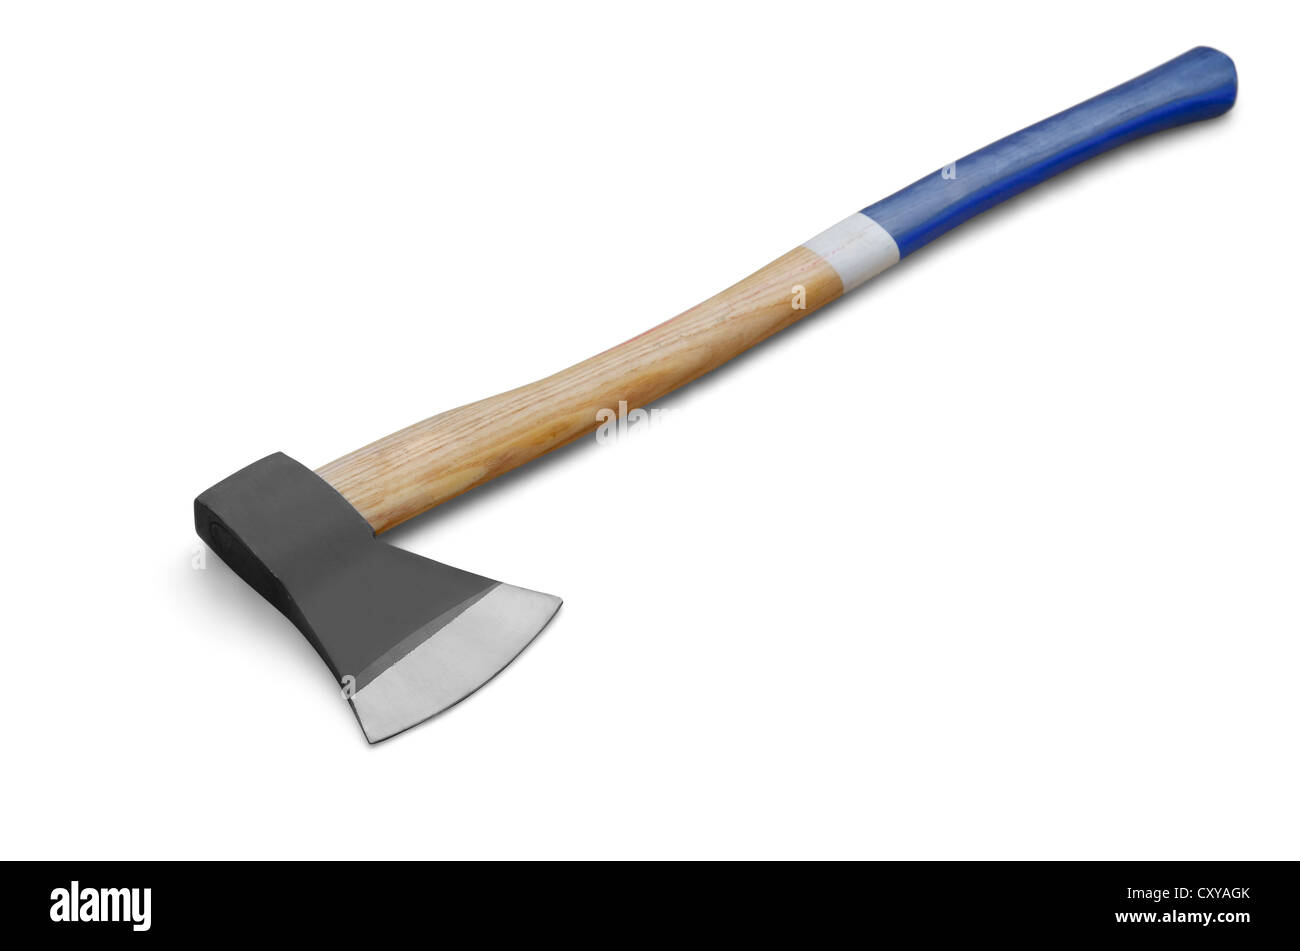 Iron axe with wooden handle isolated on white - Stock Image